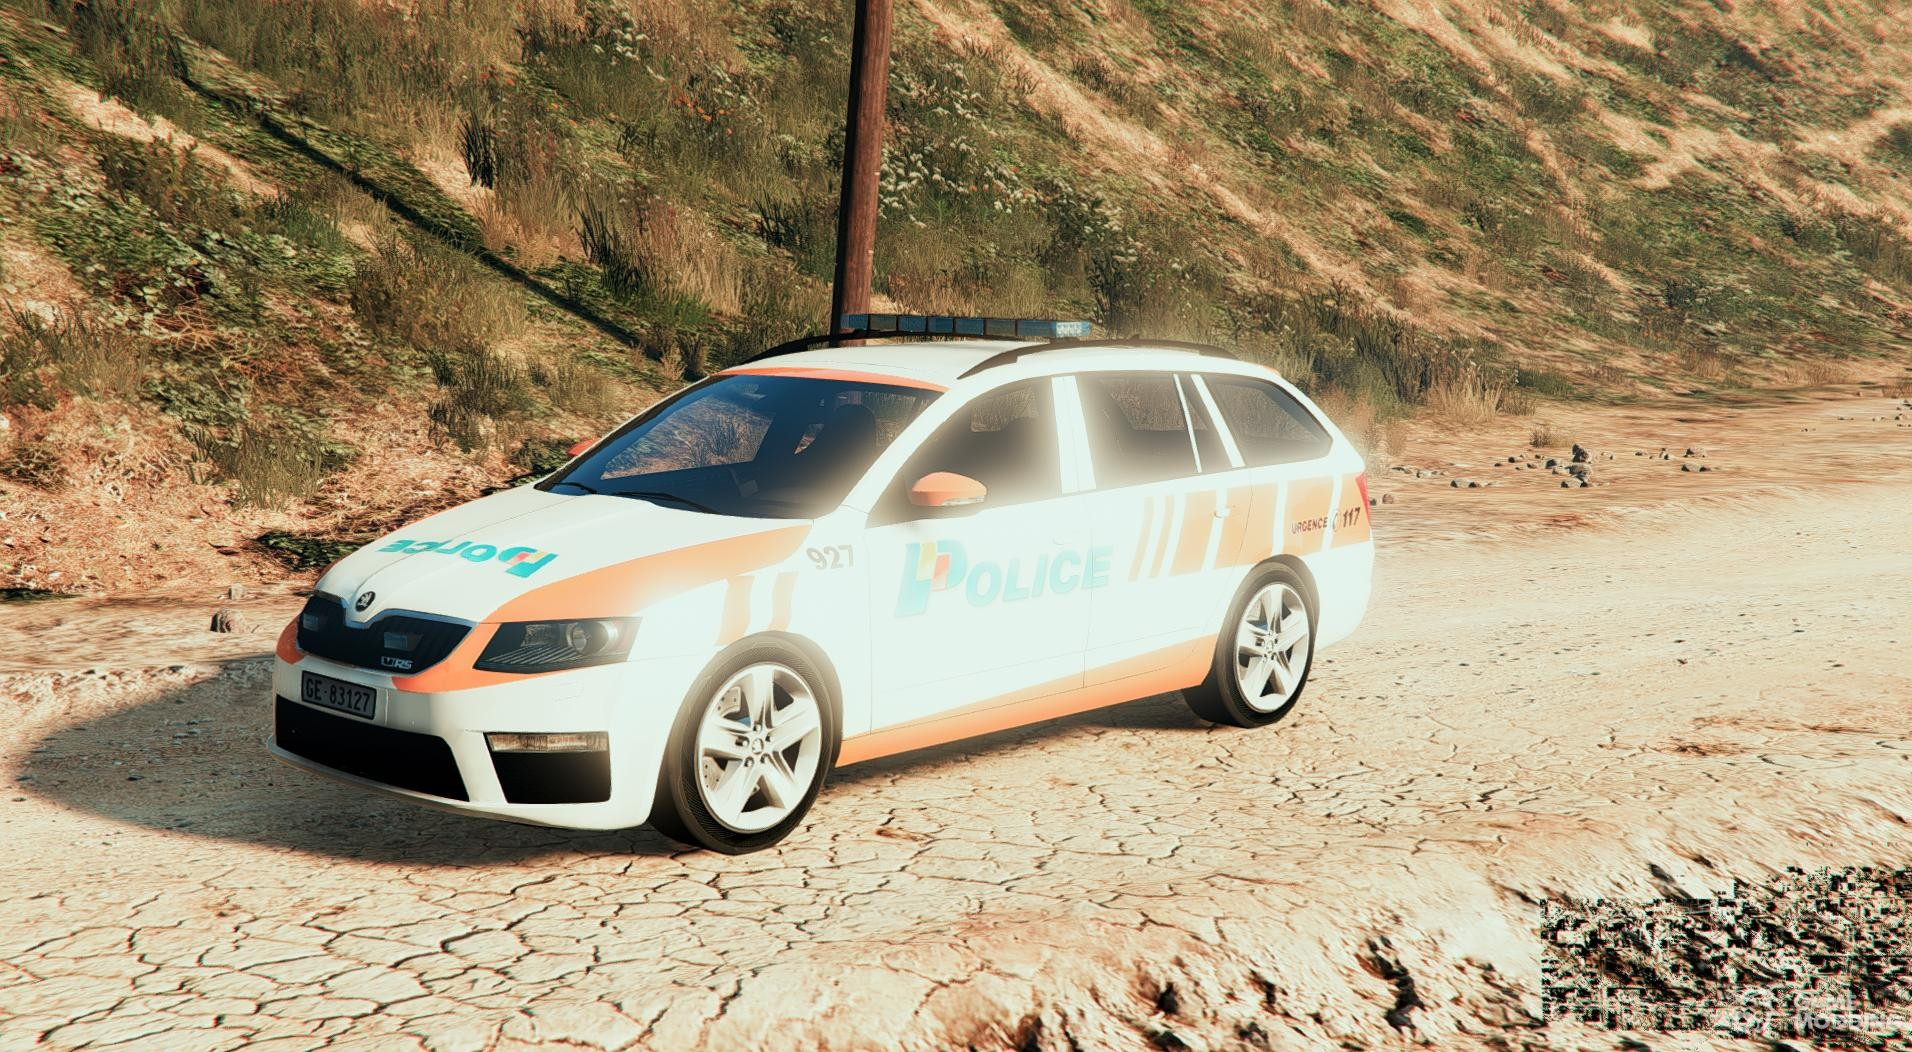 skoda octavia rs swiss ge police for gta 5. Black Bedroom Furniture Sets. Home Design Ideas